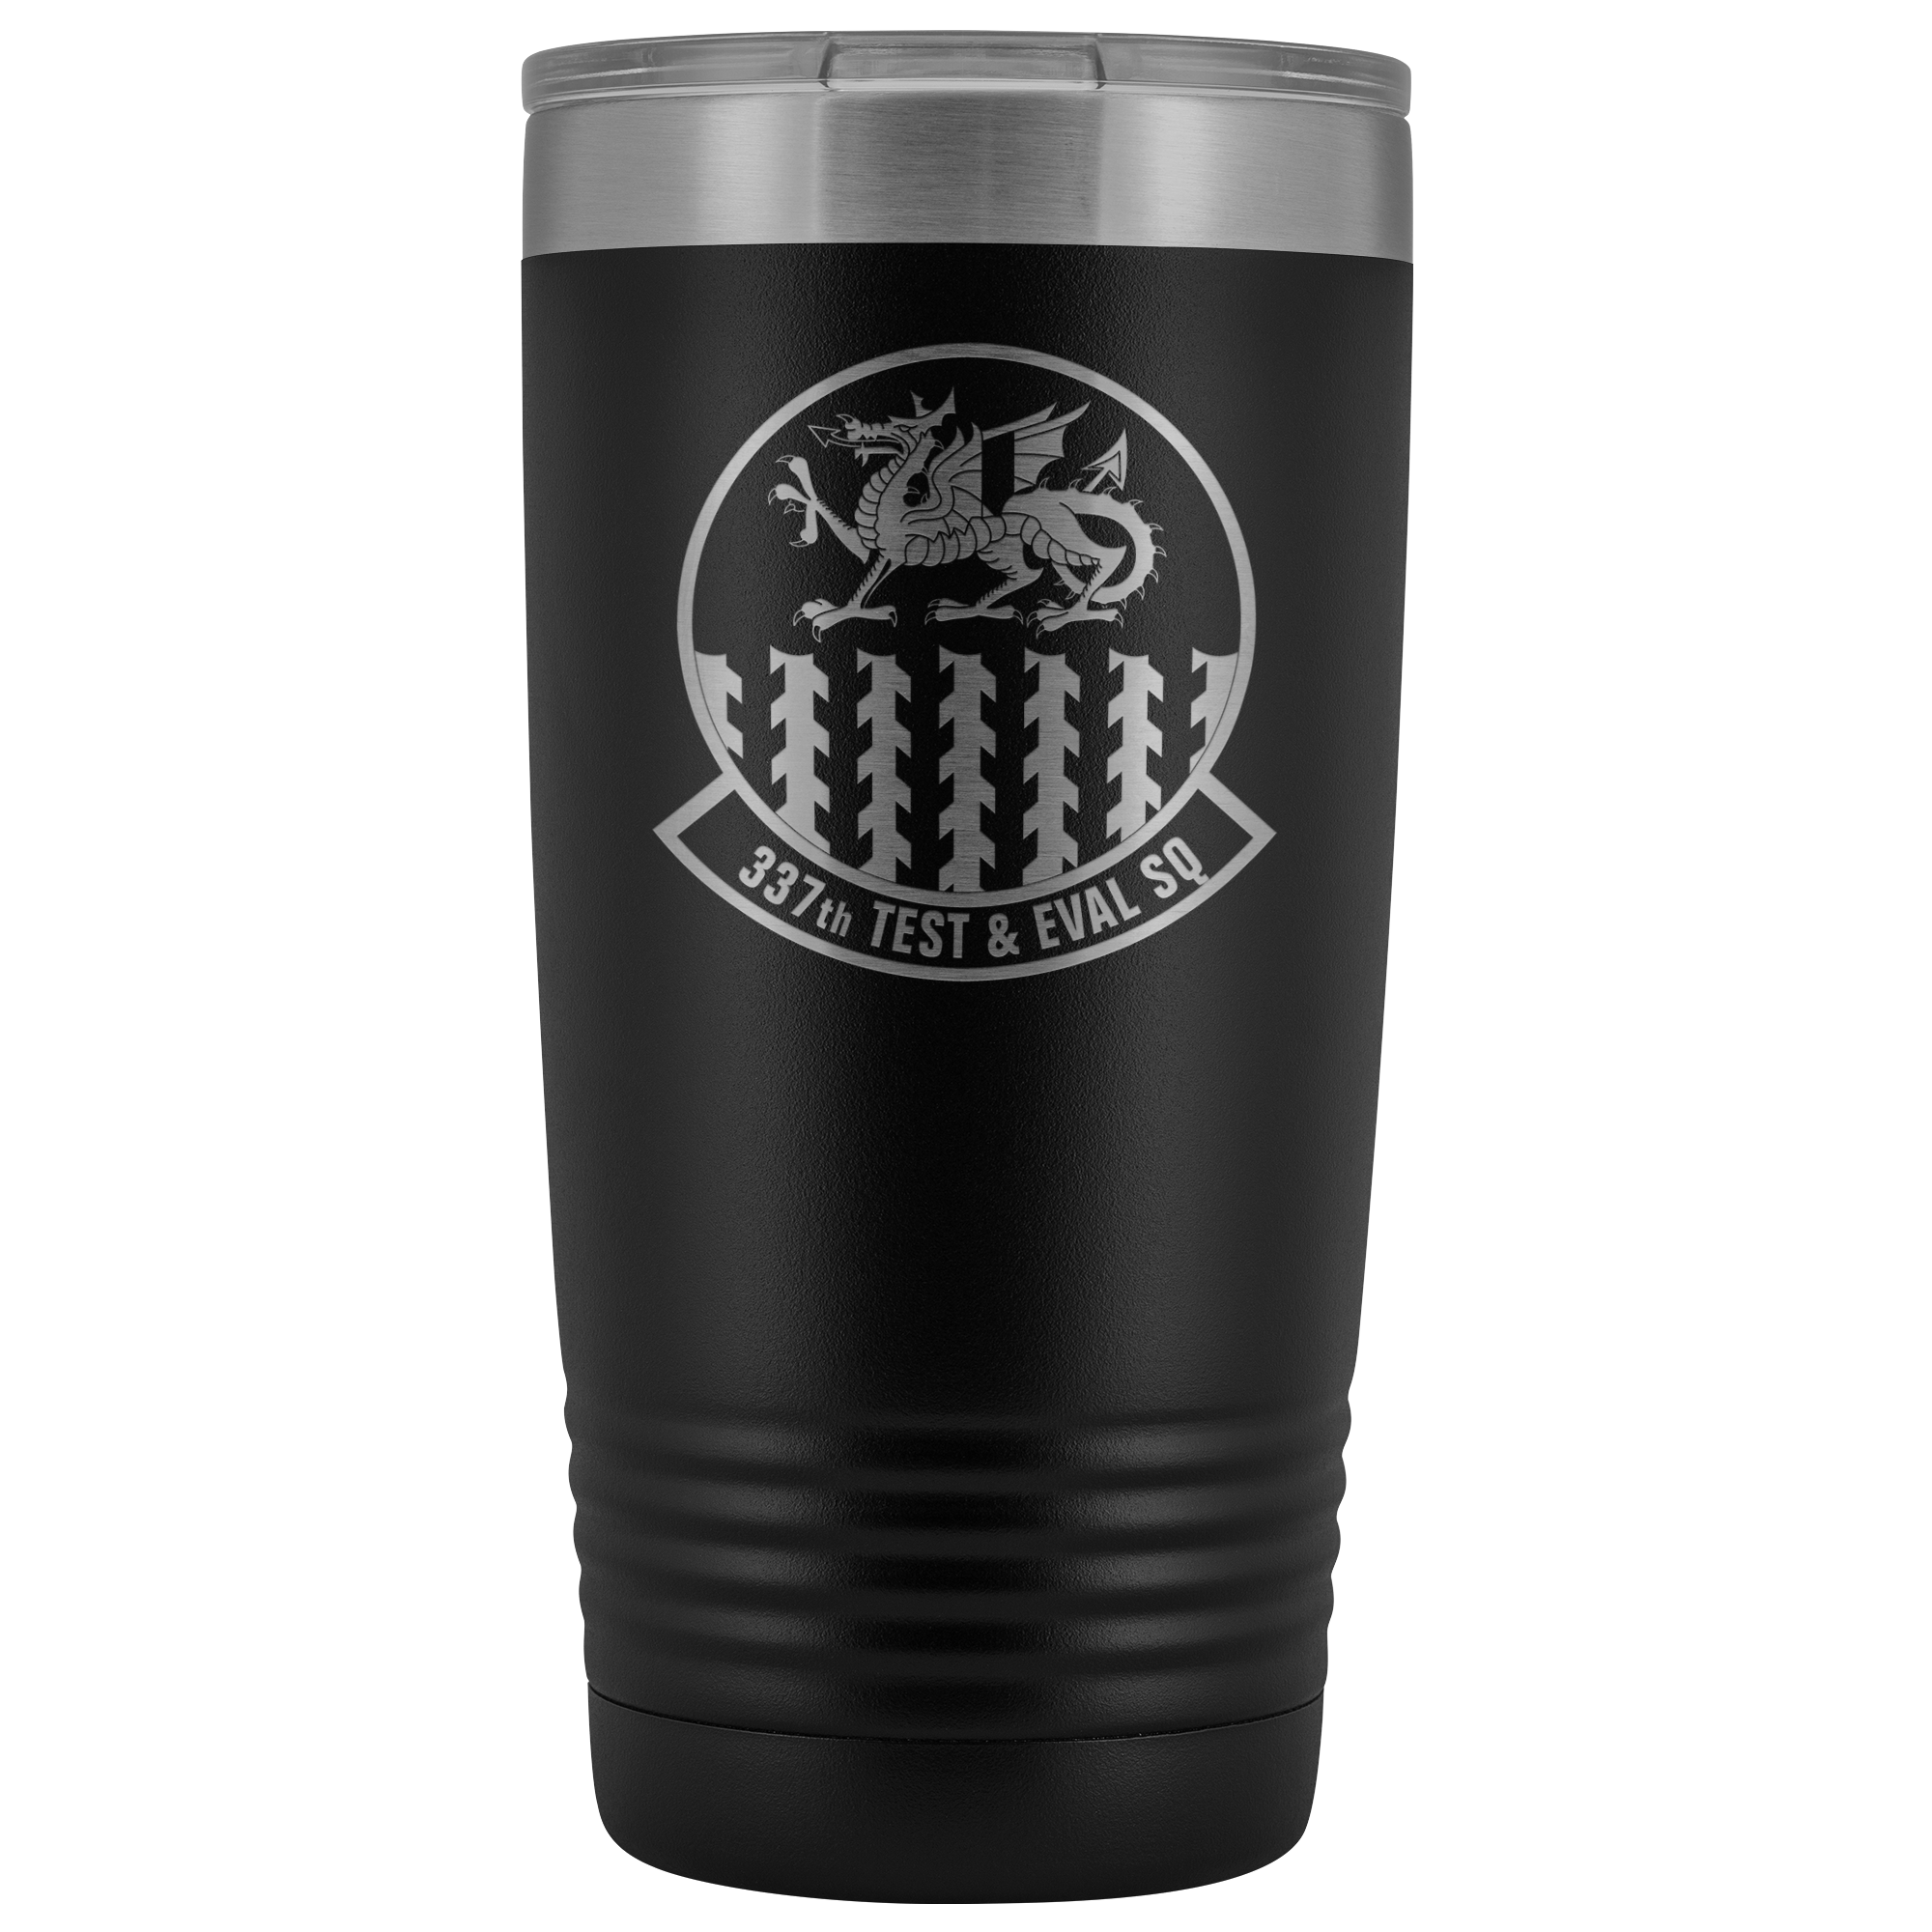 337th Test and Evaluation Squadron - 20oz Laser Etched Tumbler